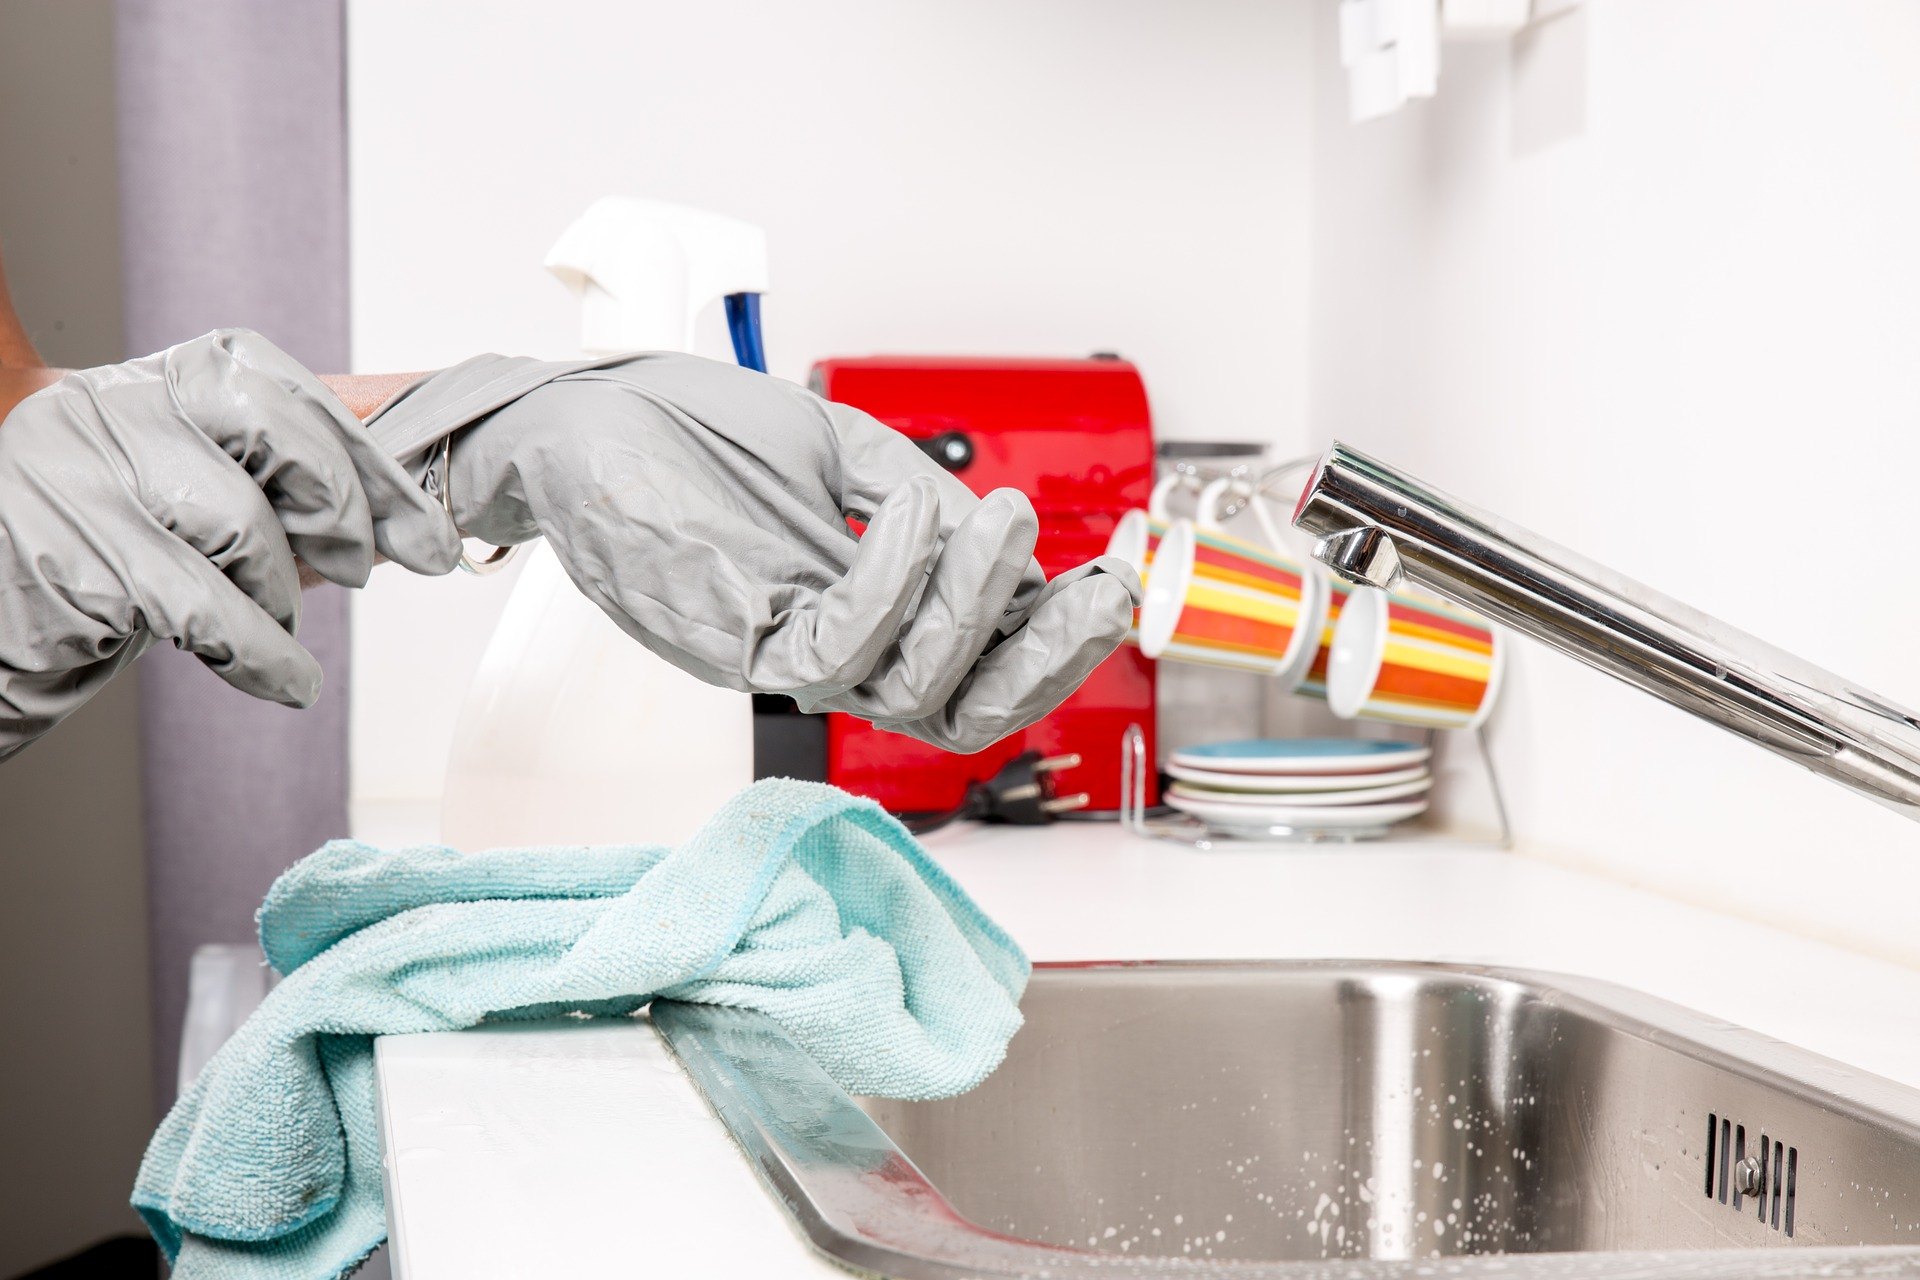 Cleaning And Cabinet Care